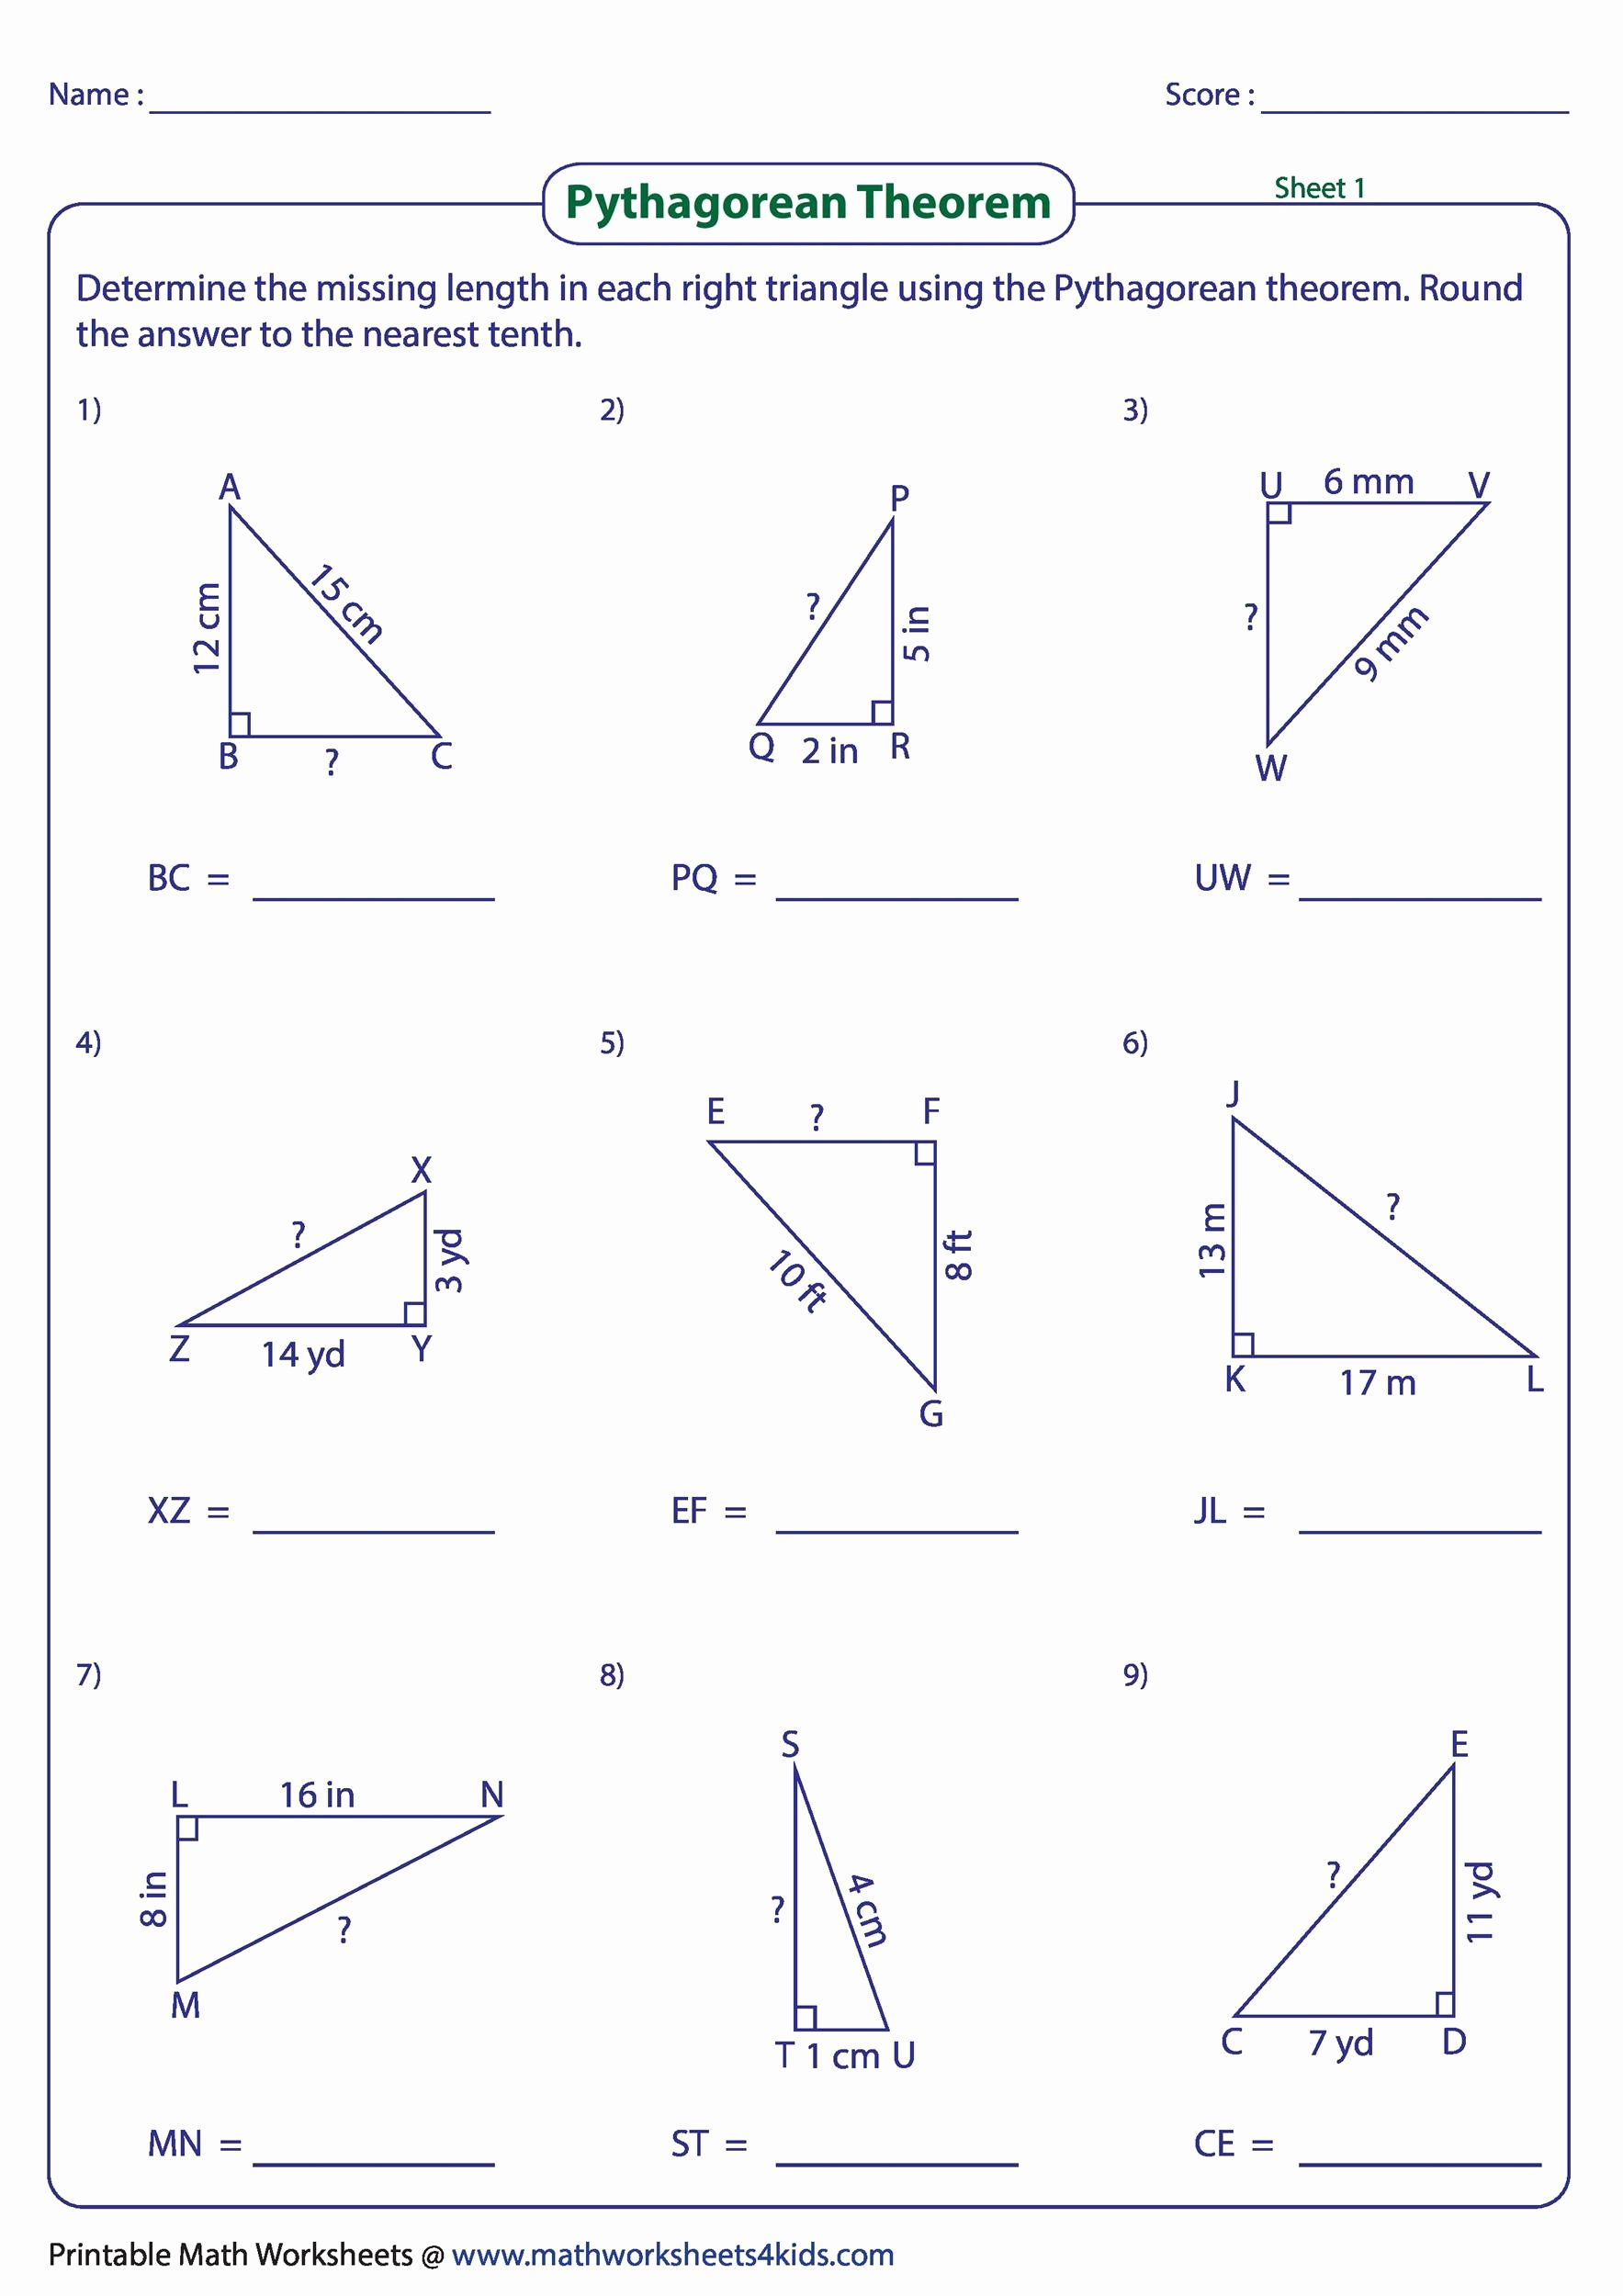 Pythagorean theorem Worksheet with Answers Fresh 34 Pythagorean theorem Worksheet Answer Key Worksheet